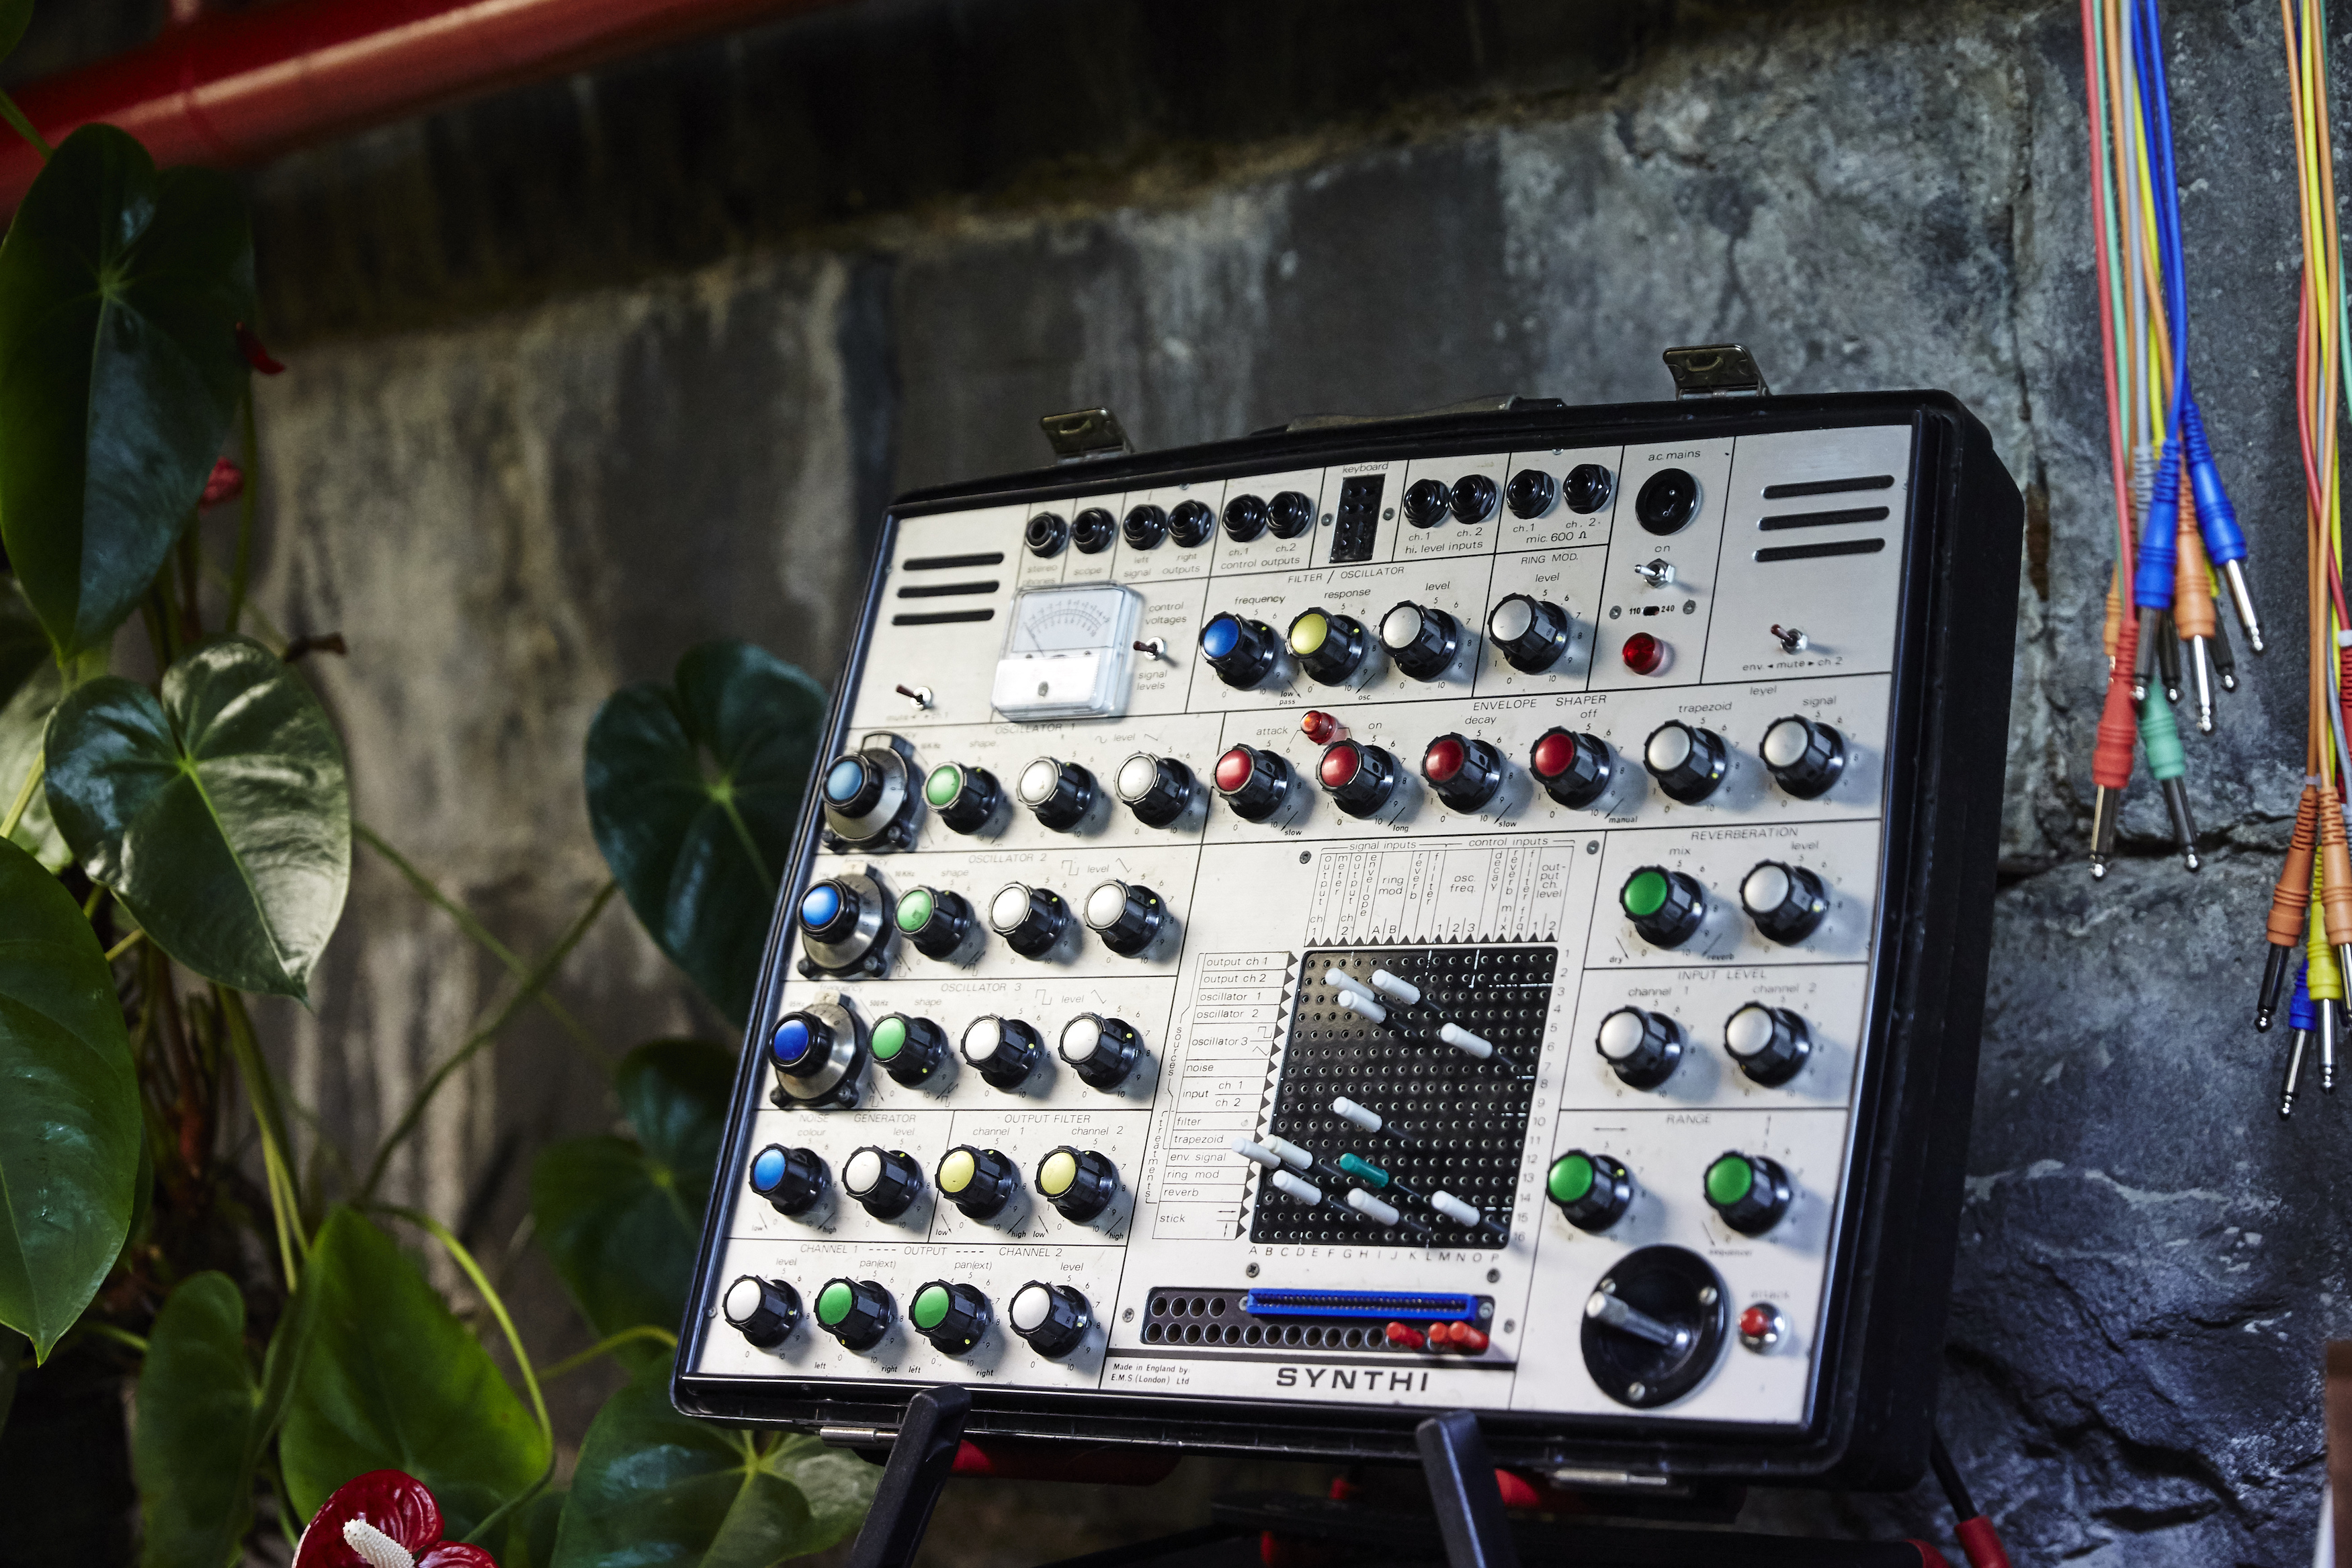 Synthesizers Sound of the Future - Những sự kiện miễn phí ở Melbourne trong tháng 5